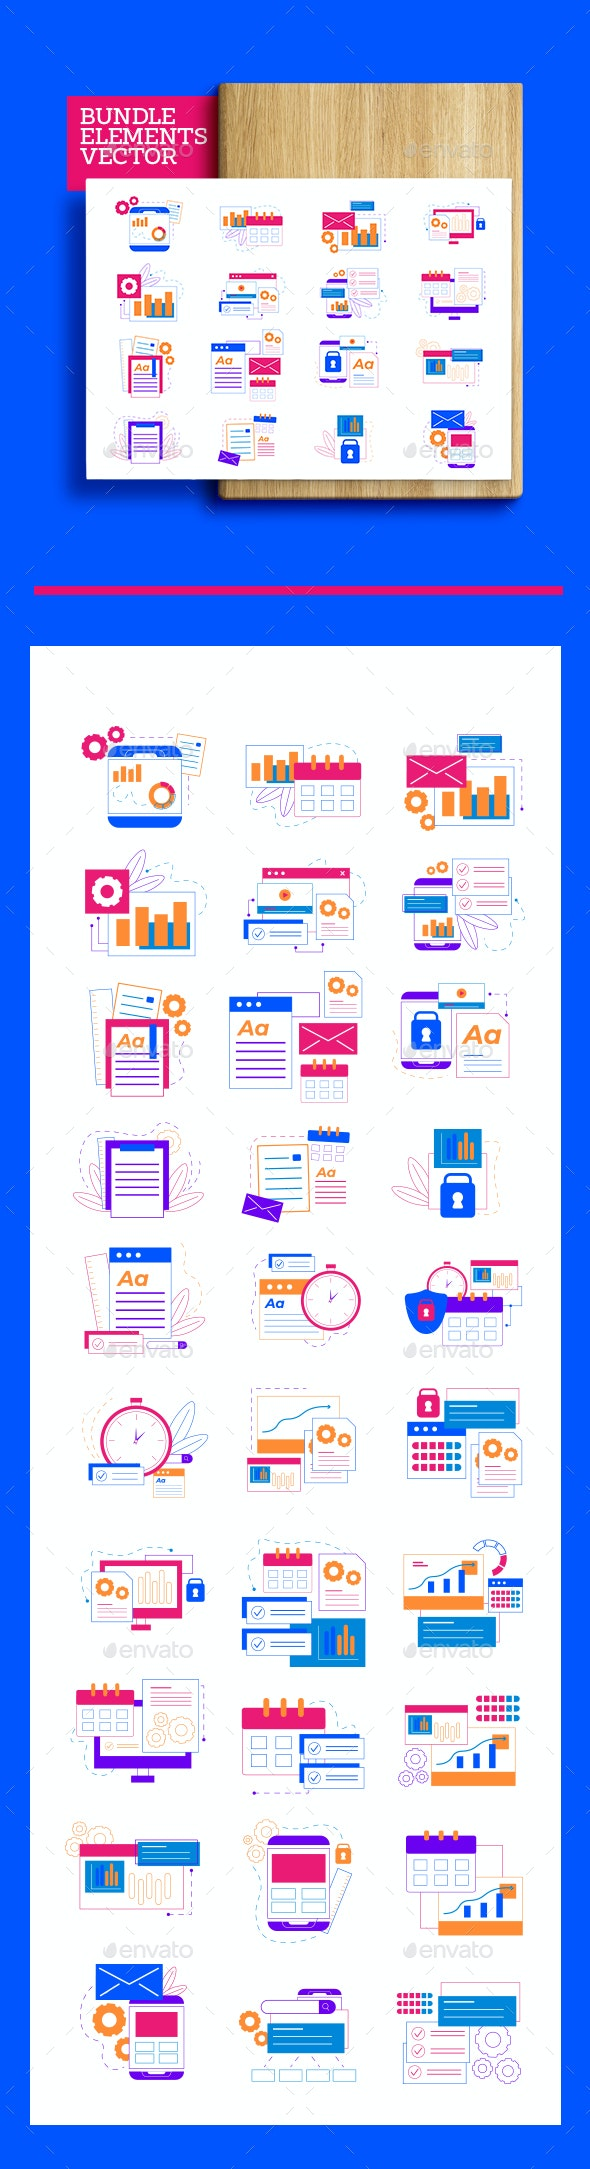 Download Digital Marketing Vector Images